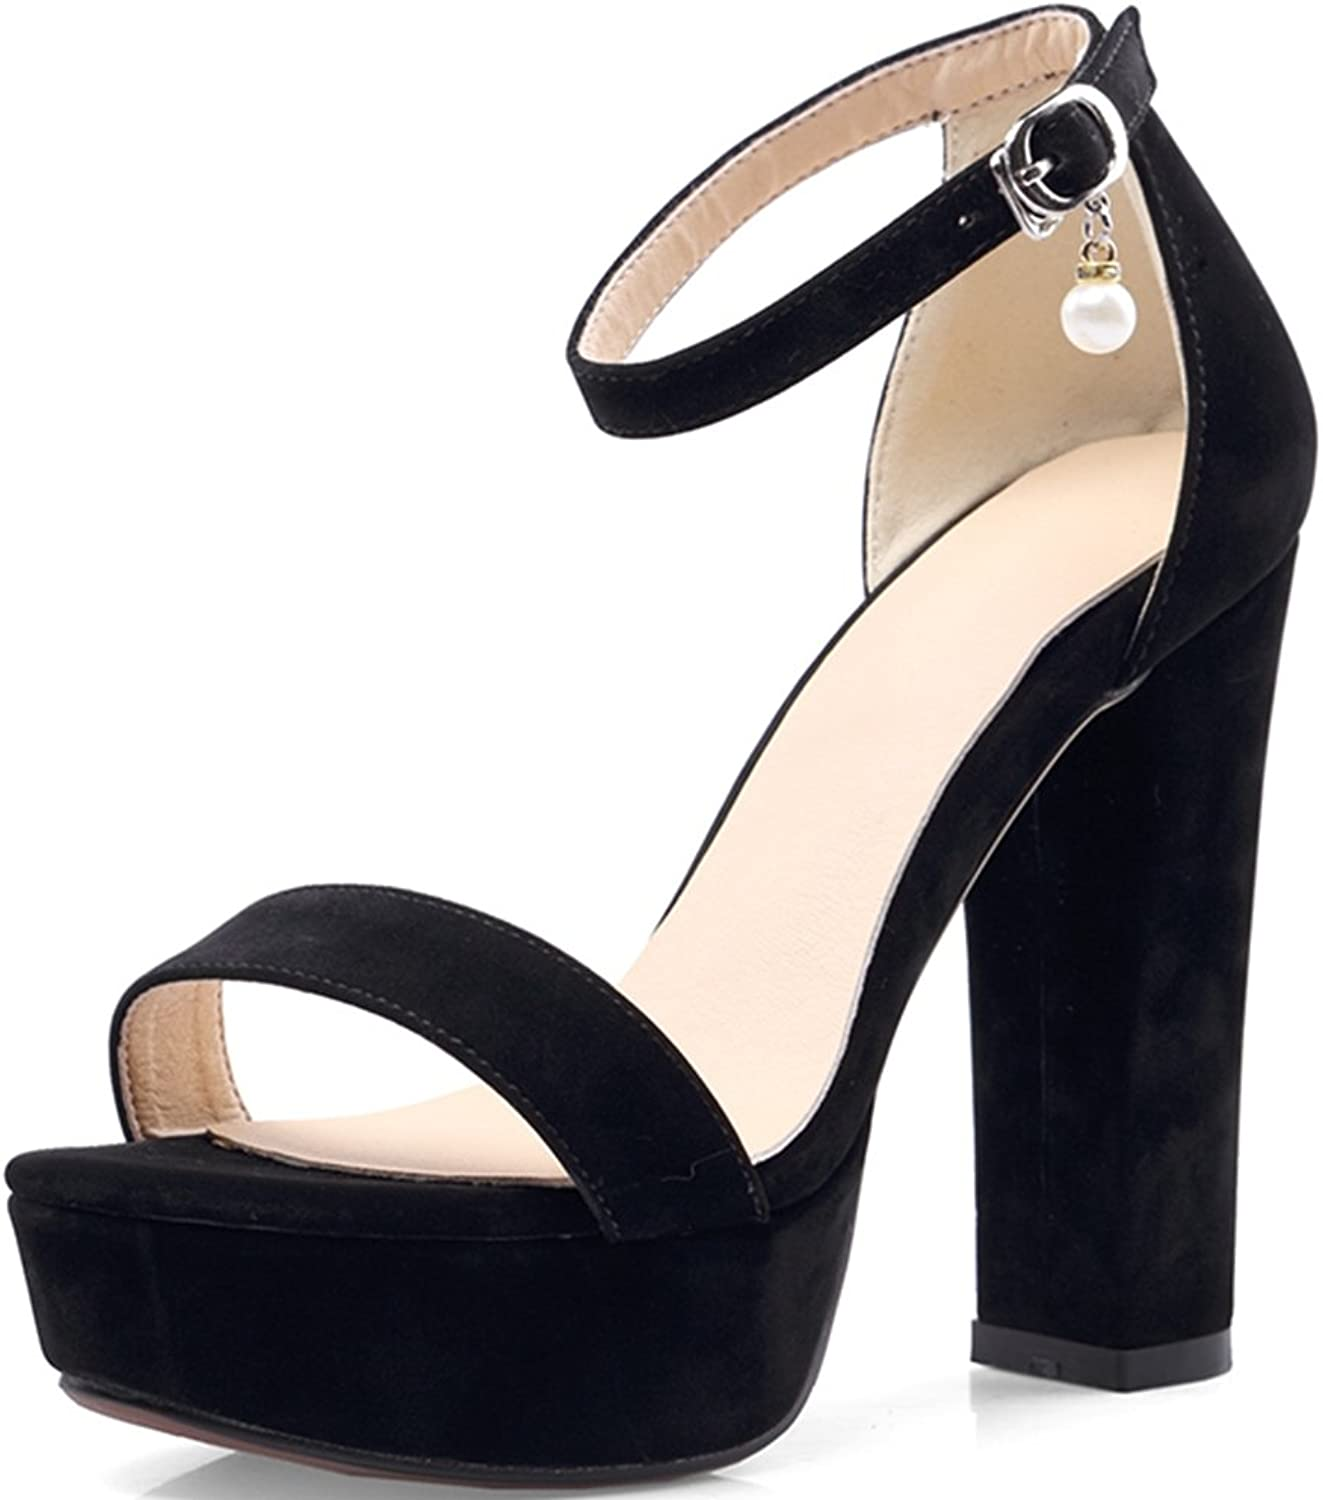 KingRover Women's Platform Ankle Strap High Heel - Open Toe Sandal - Sexy Chunky Dressy Heel Summer shoes